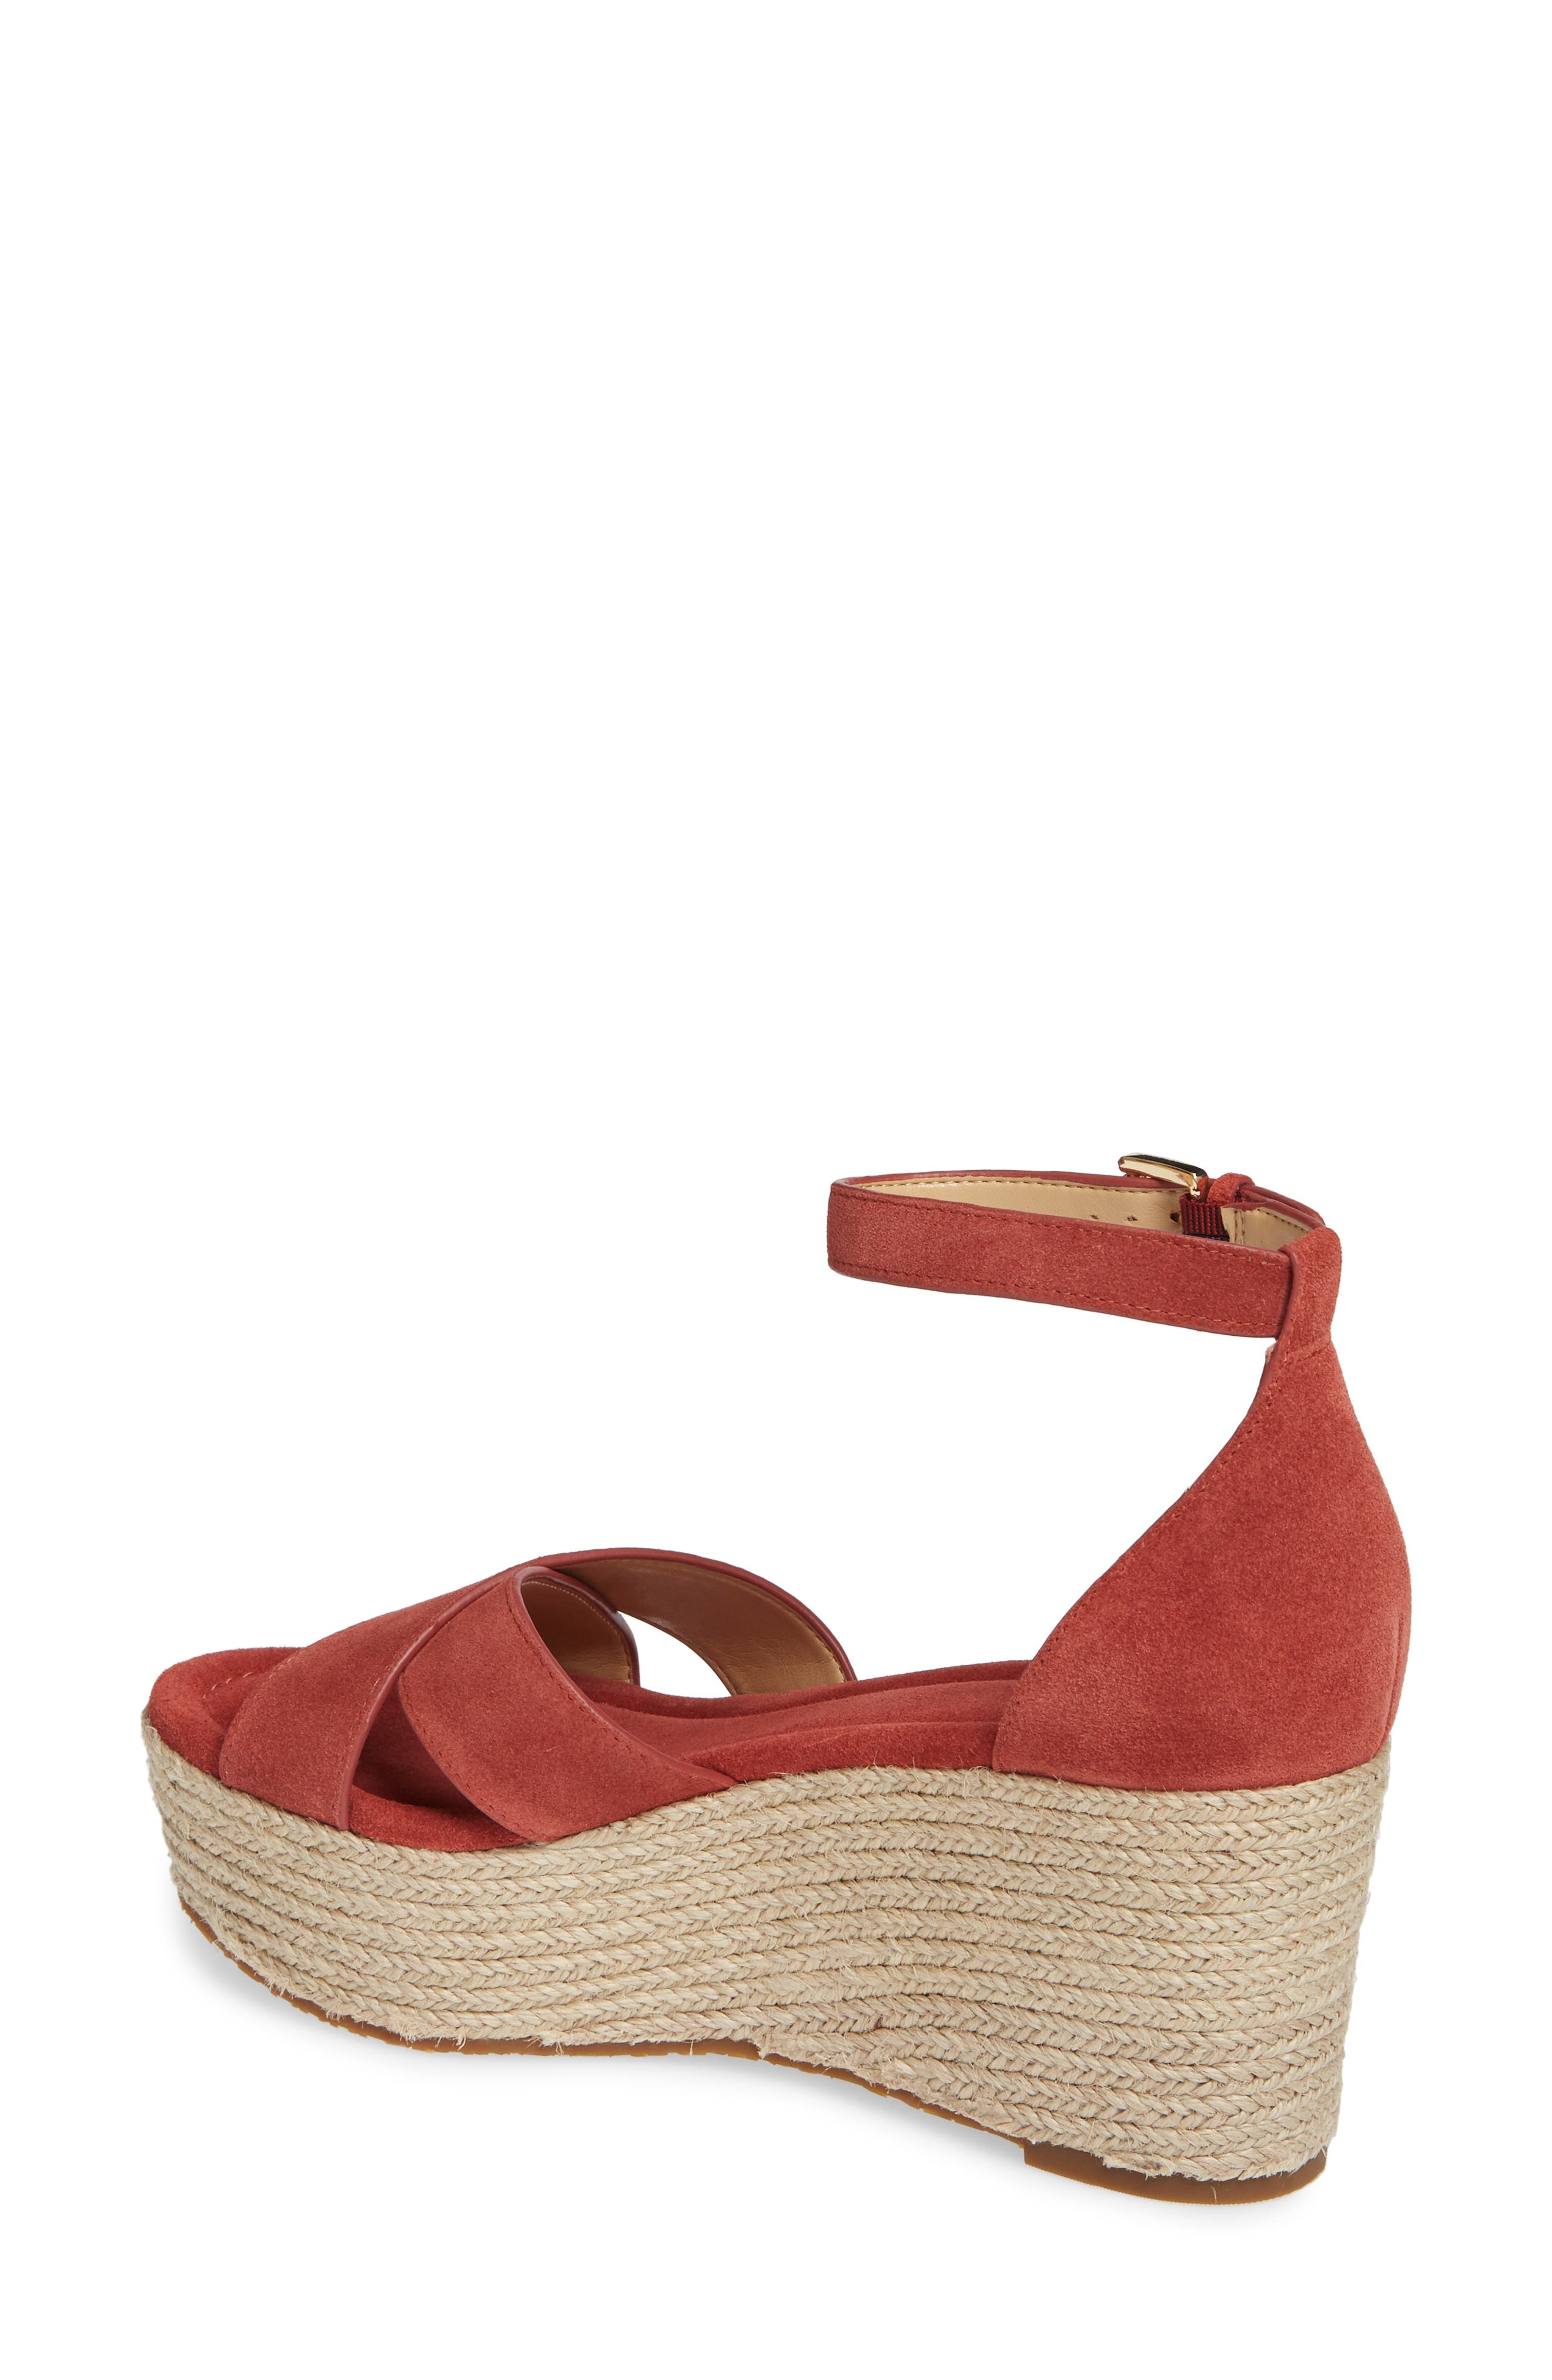 MICHAEL MICHAEL KORS, Desiree Jute Espadrille Wedge, Alternate thumbnail 2, color, TERRACOTTA SUEDE